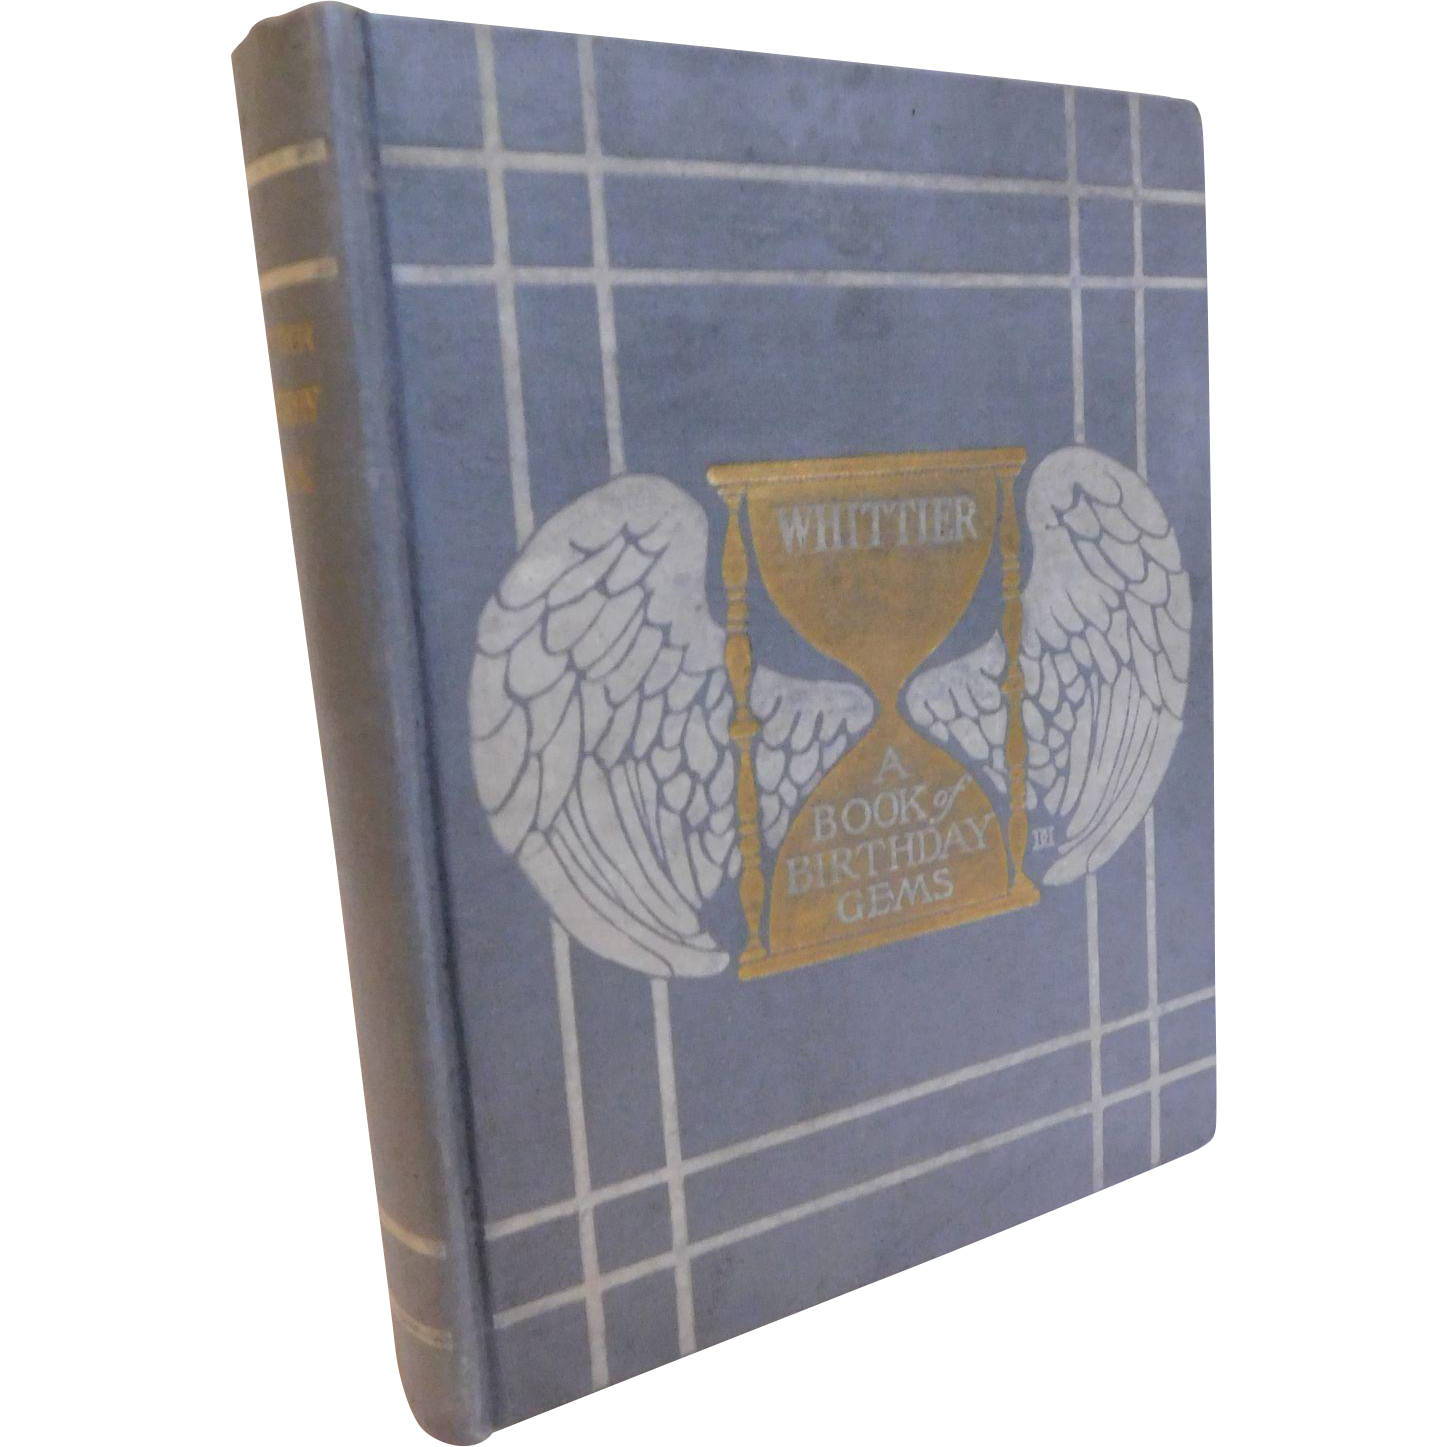 1905 Whittier's Birthday Book of Memory Gems Illustrated Poems For Day By Day Daily Poem Antique Book